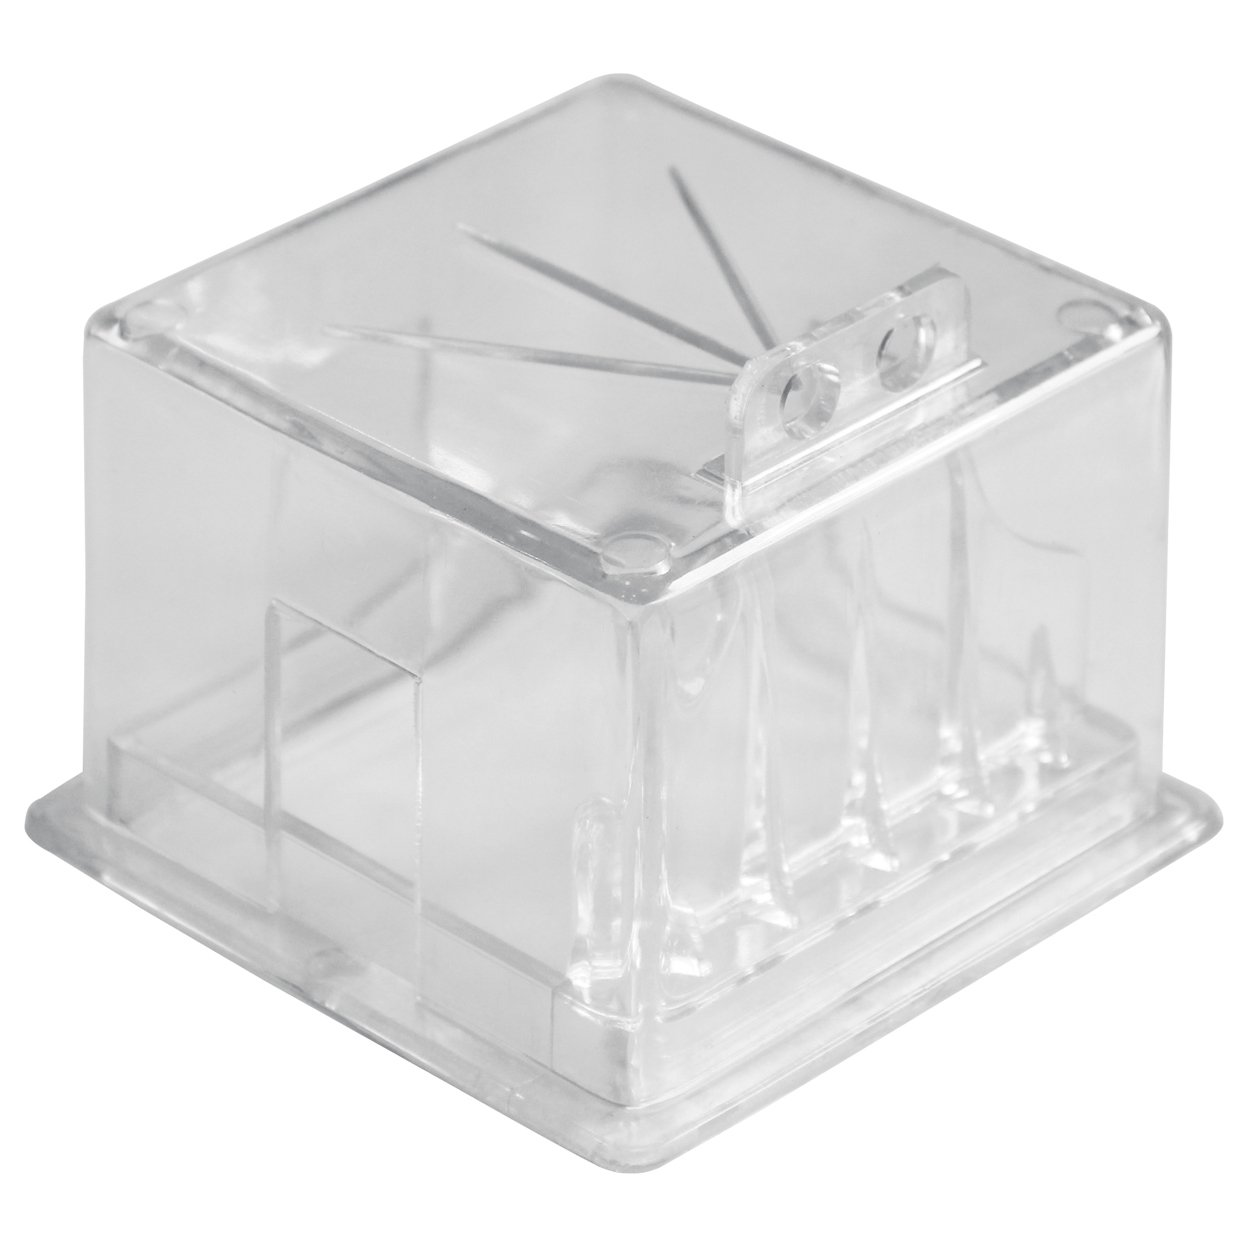 Lockout Safety Supply 7281 Electrical Panel Lockout Square Box LG 90, Clear